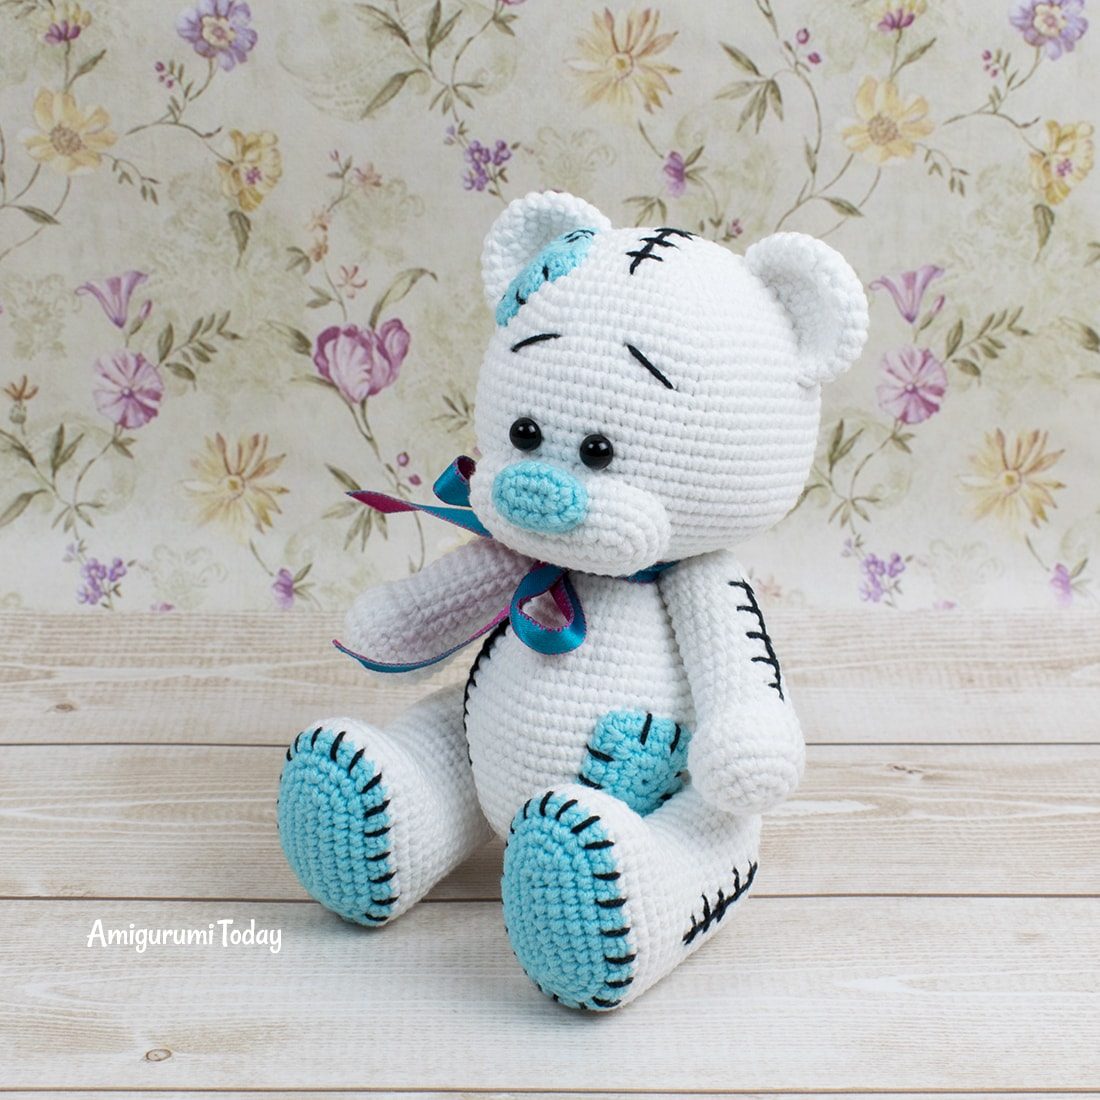 Free Teddy Bear amigurumi pattern designed by Amigurumi Today